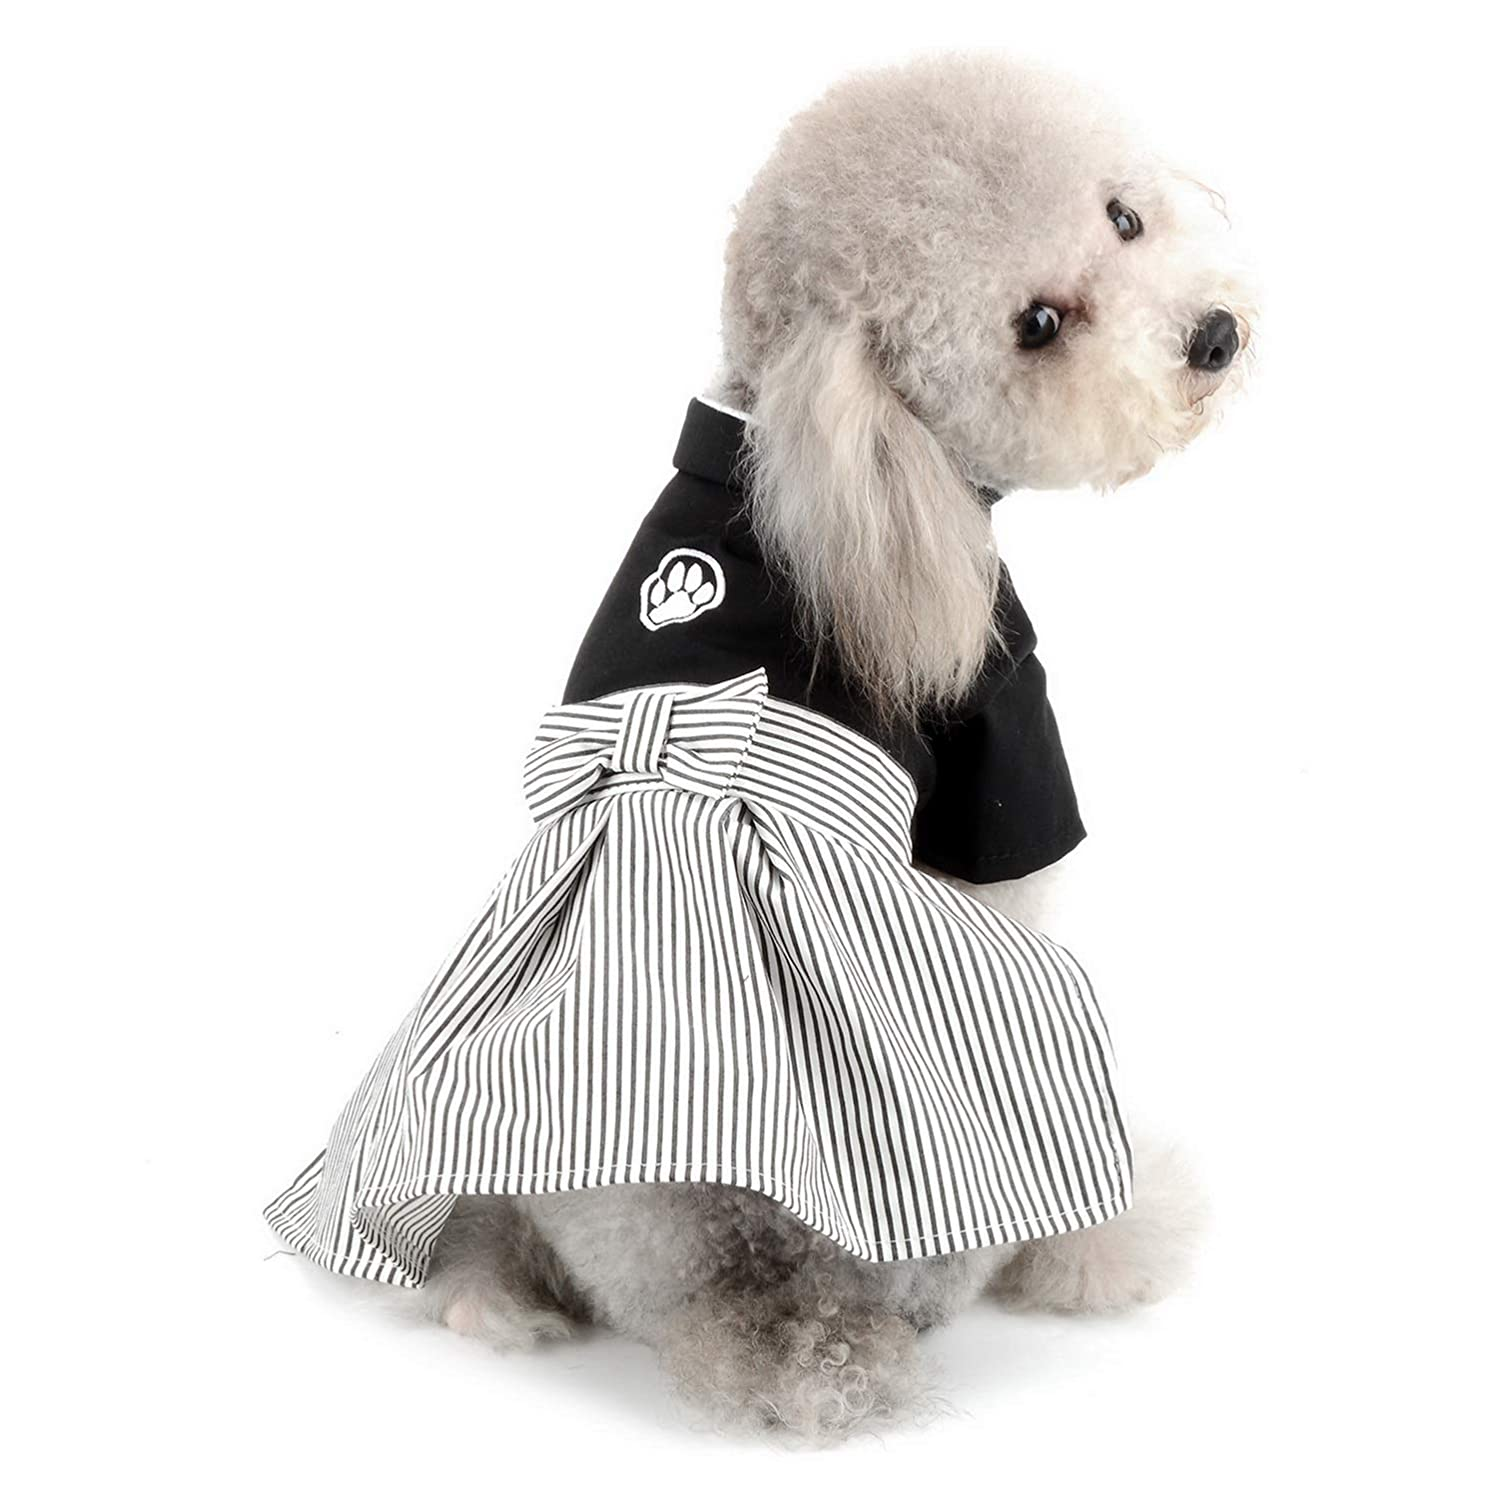 SELMAI Pet Kimono Costume Formal Girl Dog Dress and Boy Dog Jumpsuit Outfits Tuxedo Suit Shirt for Small Dogs Cats Wedding Party Clothes Girl Size M